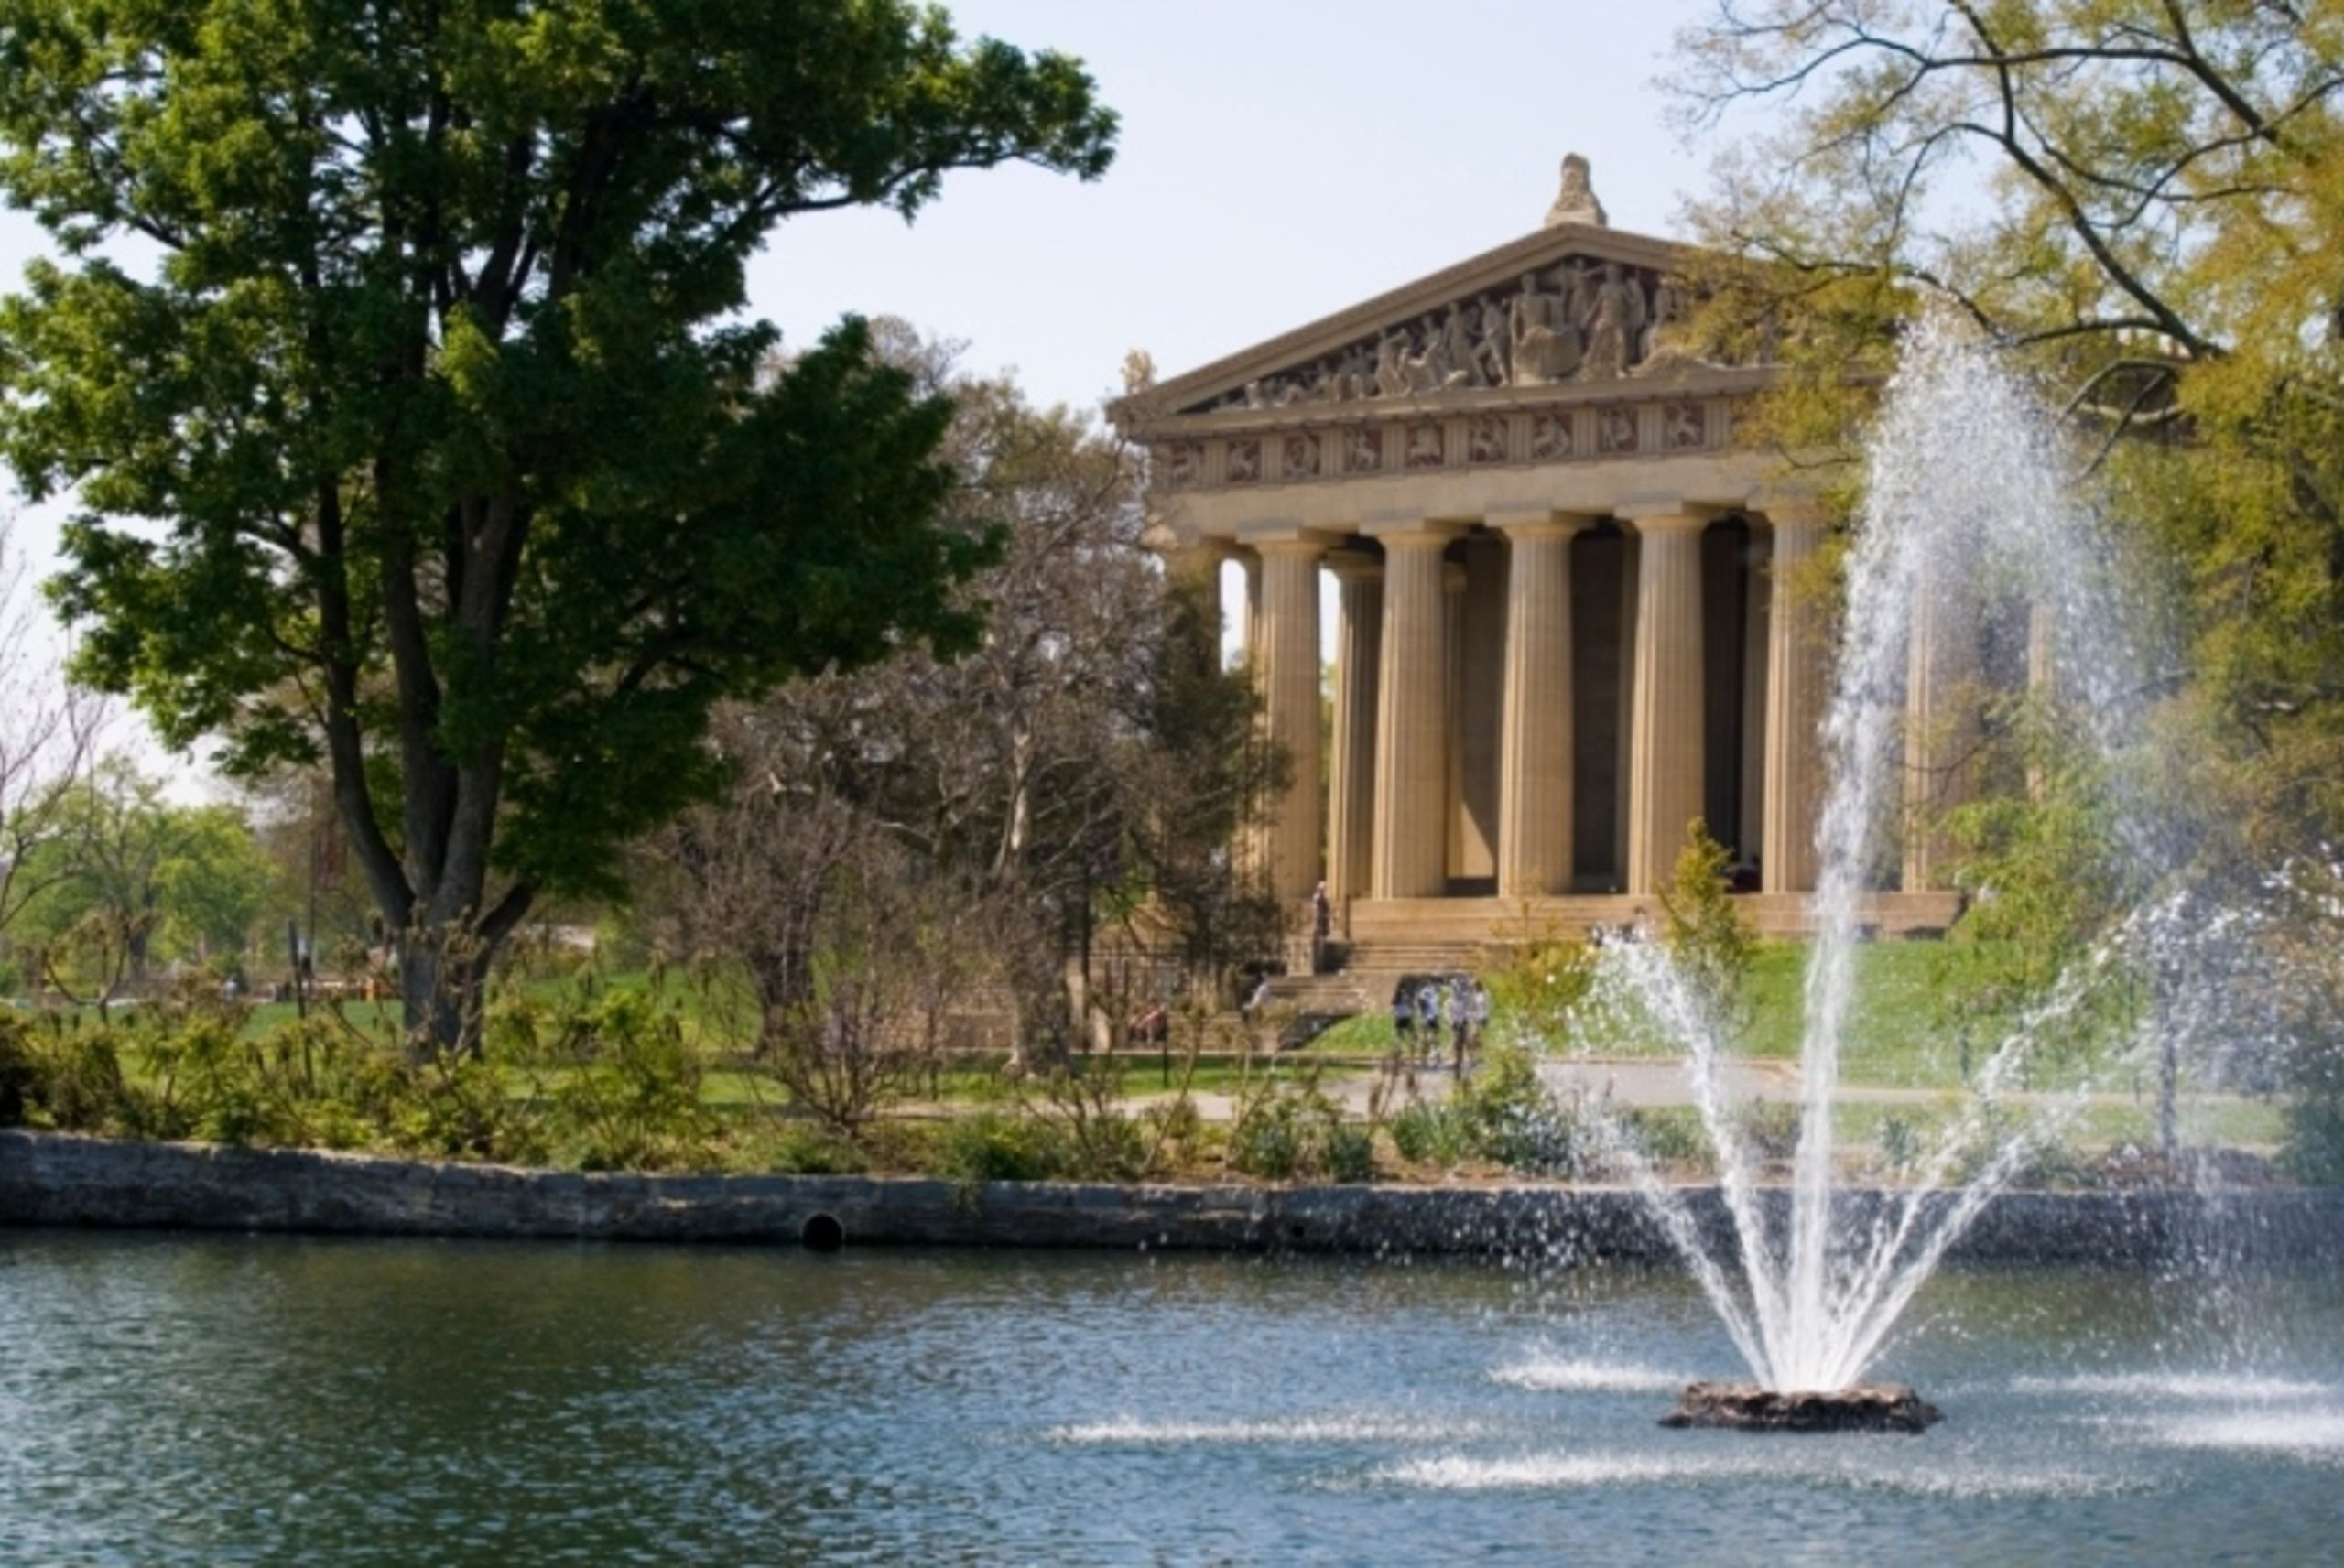 Centennial Park is Nashville's Central Park